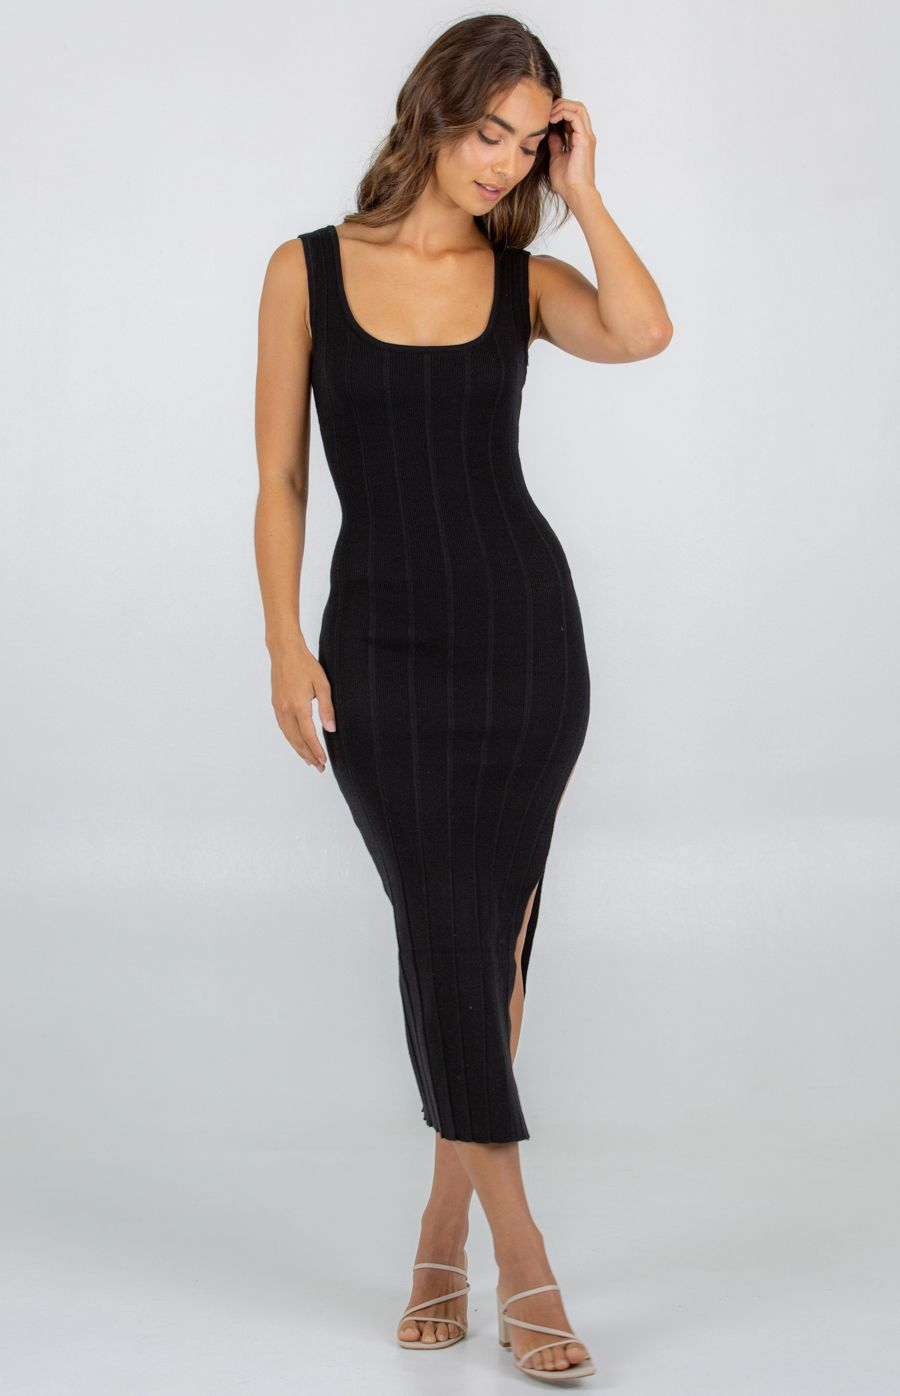 Wide Rib Textured Knit Dress With Side Split - Black